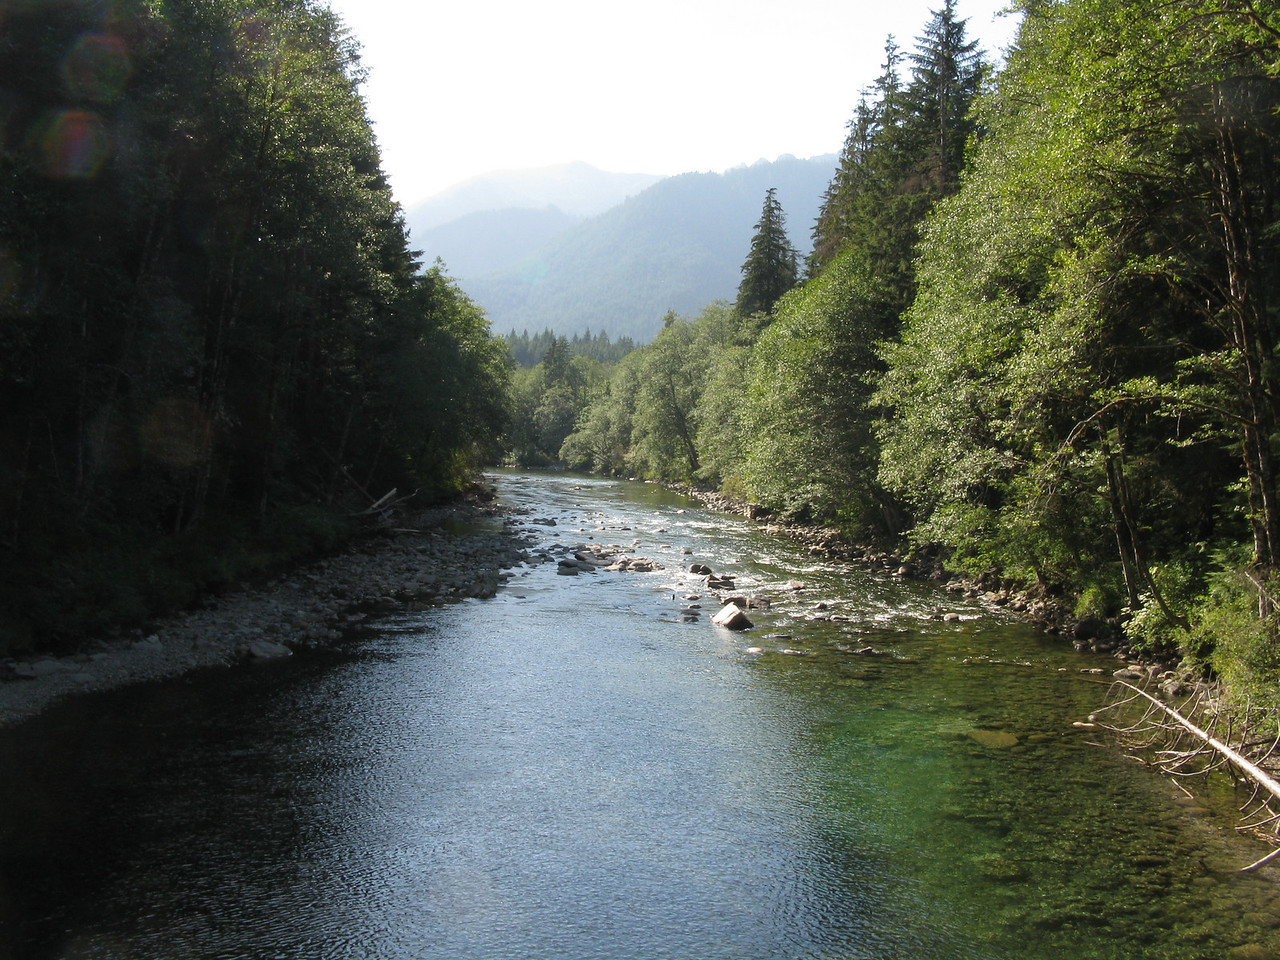 A downstream view of the Middle Fork River.  We had a great hike.